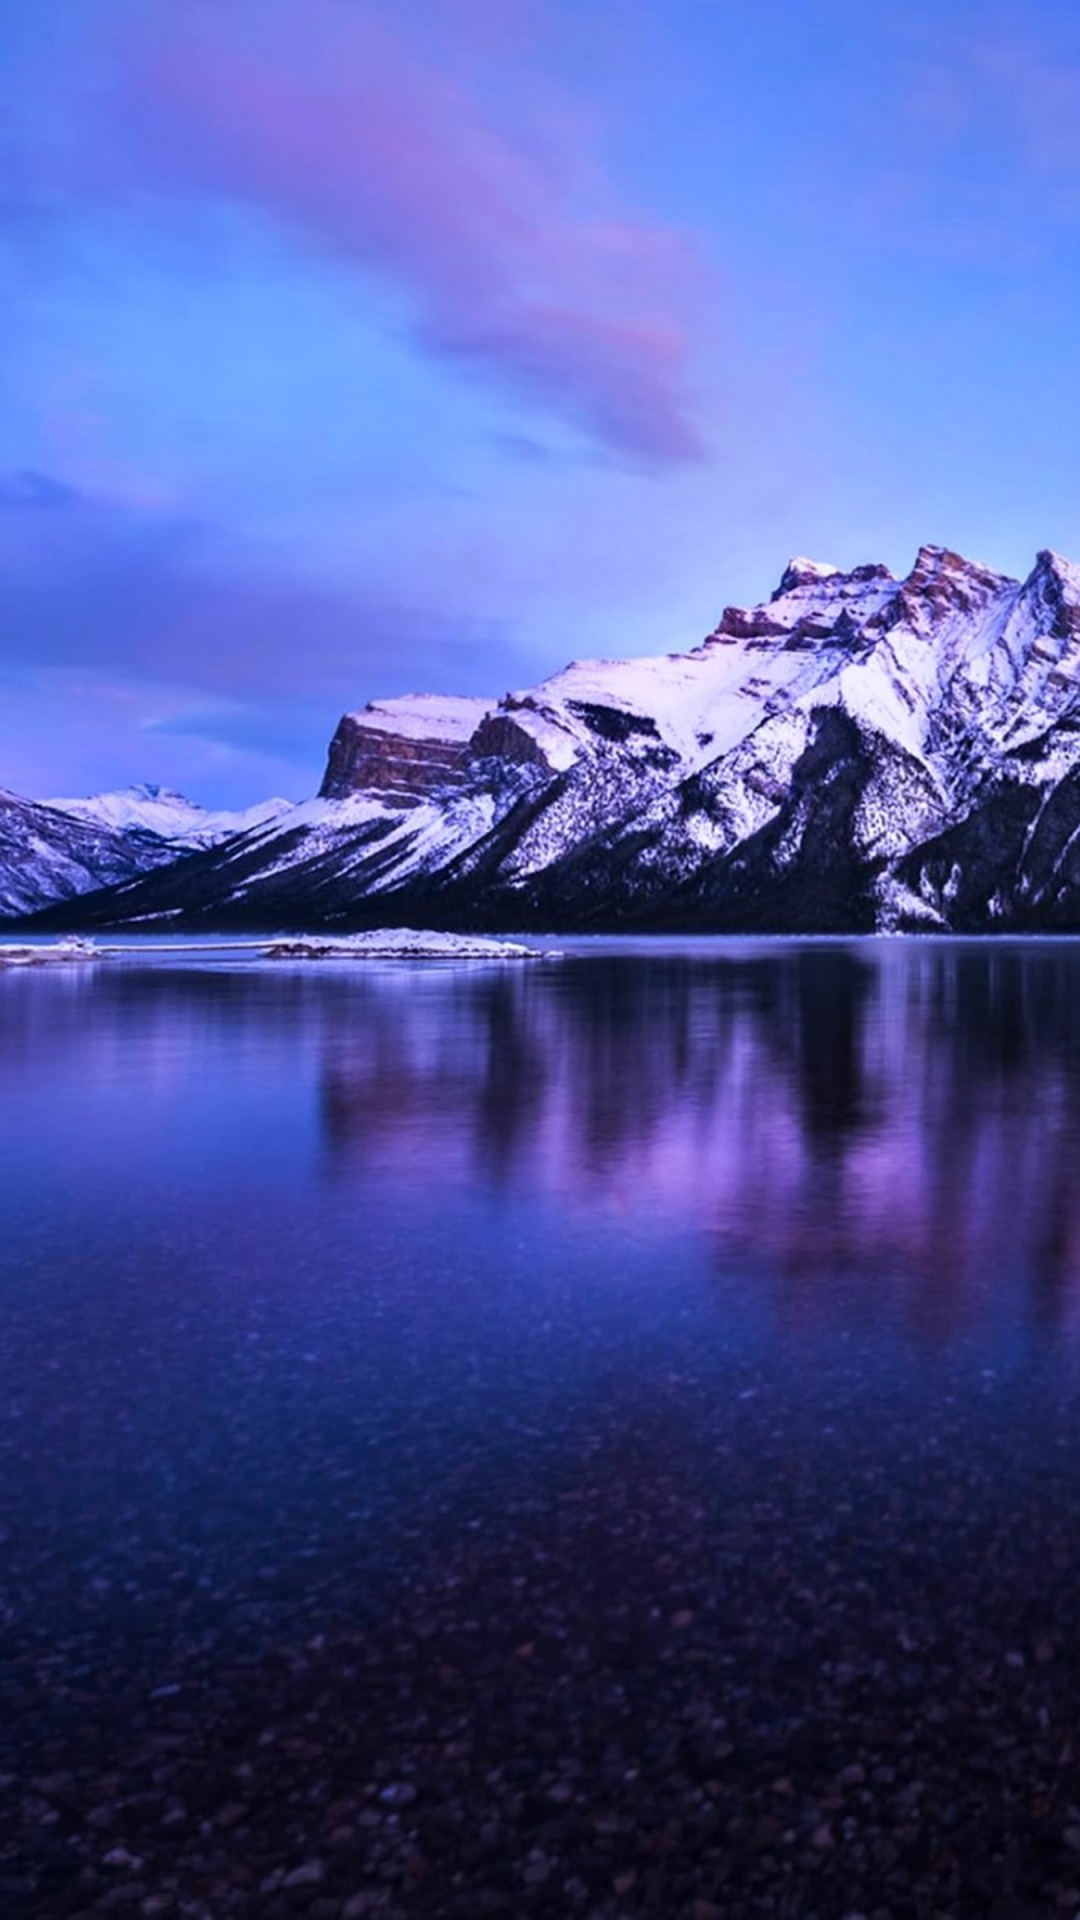 Banff National Park Wallpaper for SAMSUNG Galaxy Note 3